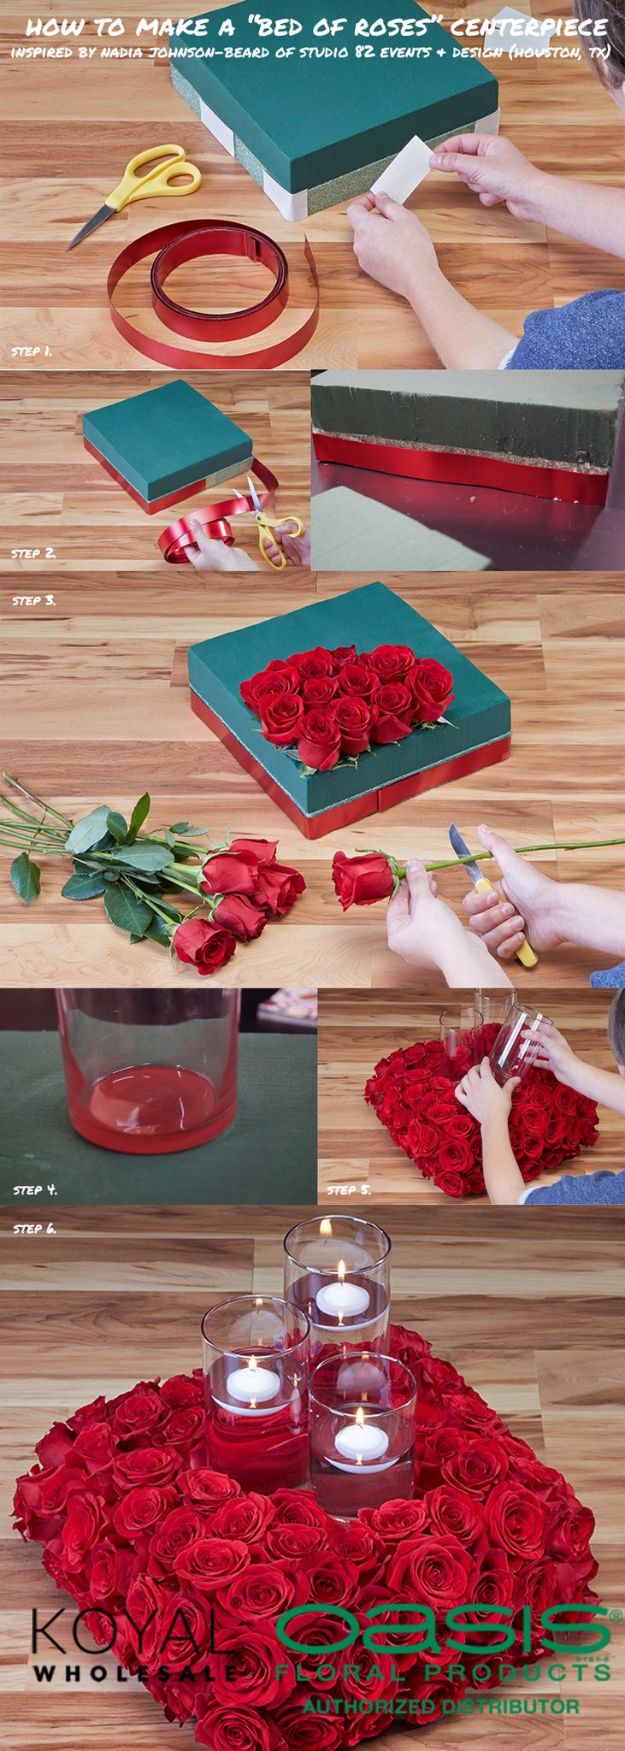 DIY Wedding Centerpieces - DIY Bed Of Roses Floating Candle Centerpiece - Do It Yourself Ideas for Brides and Best Centerpiece Ideas for Weddings - Step by Step Tutorials for Making Mason Jars, Rustic Crafts, Flowers, Modern Decor, Vintage and Cheap Ideas for Couples on A Budget Outdoor and Indoor Weddings #diyweddings #weddingcenterpieces #weddingdecorideas